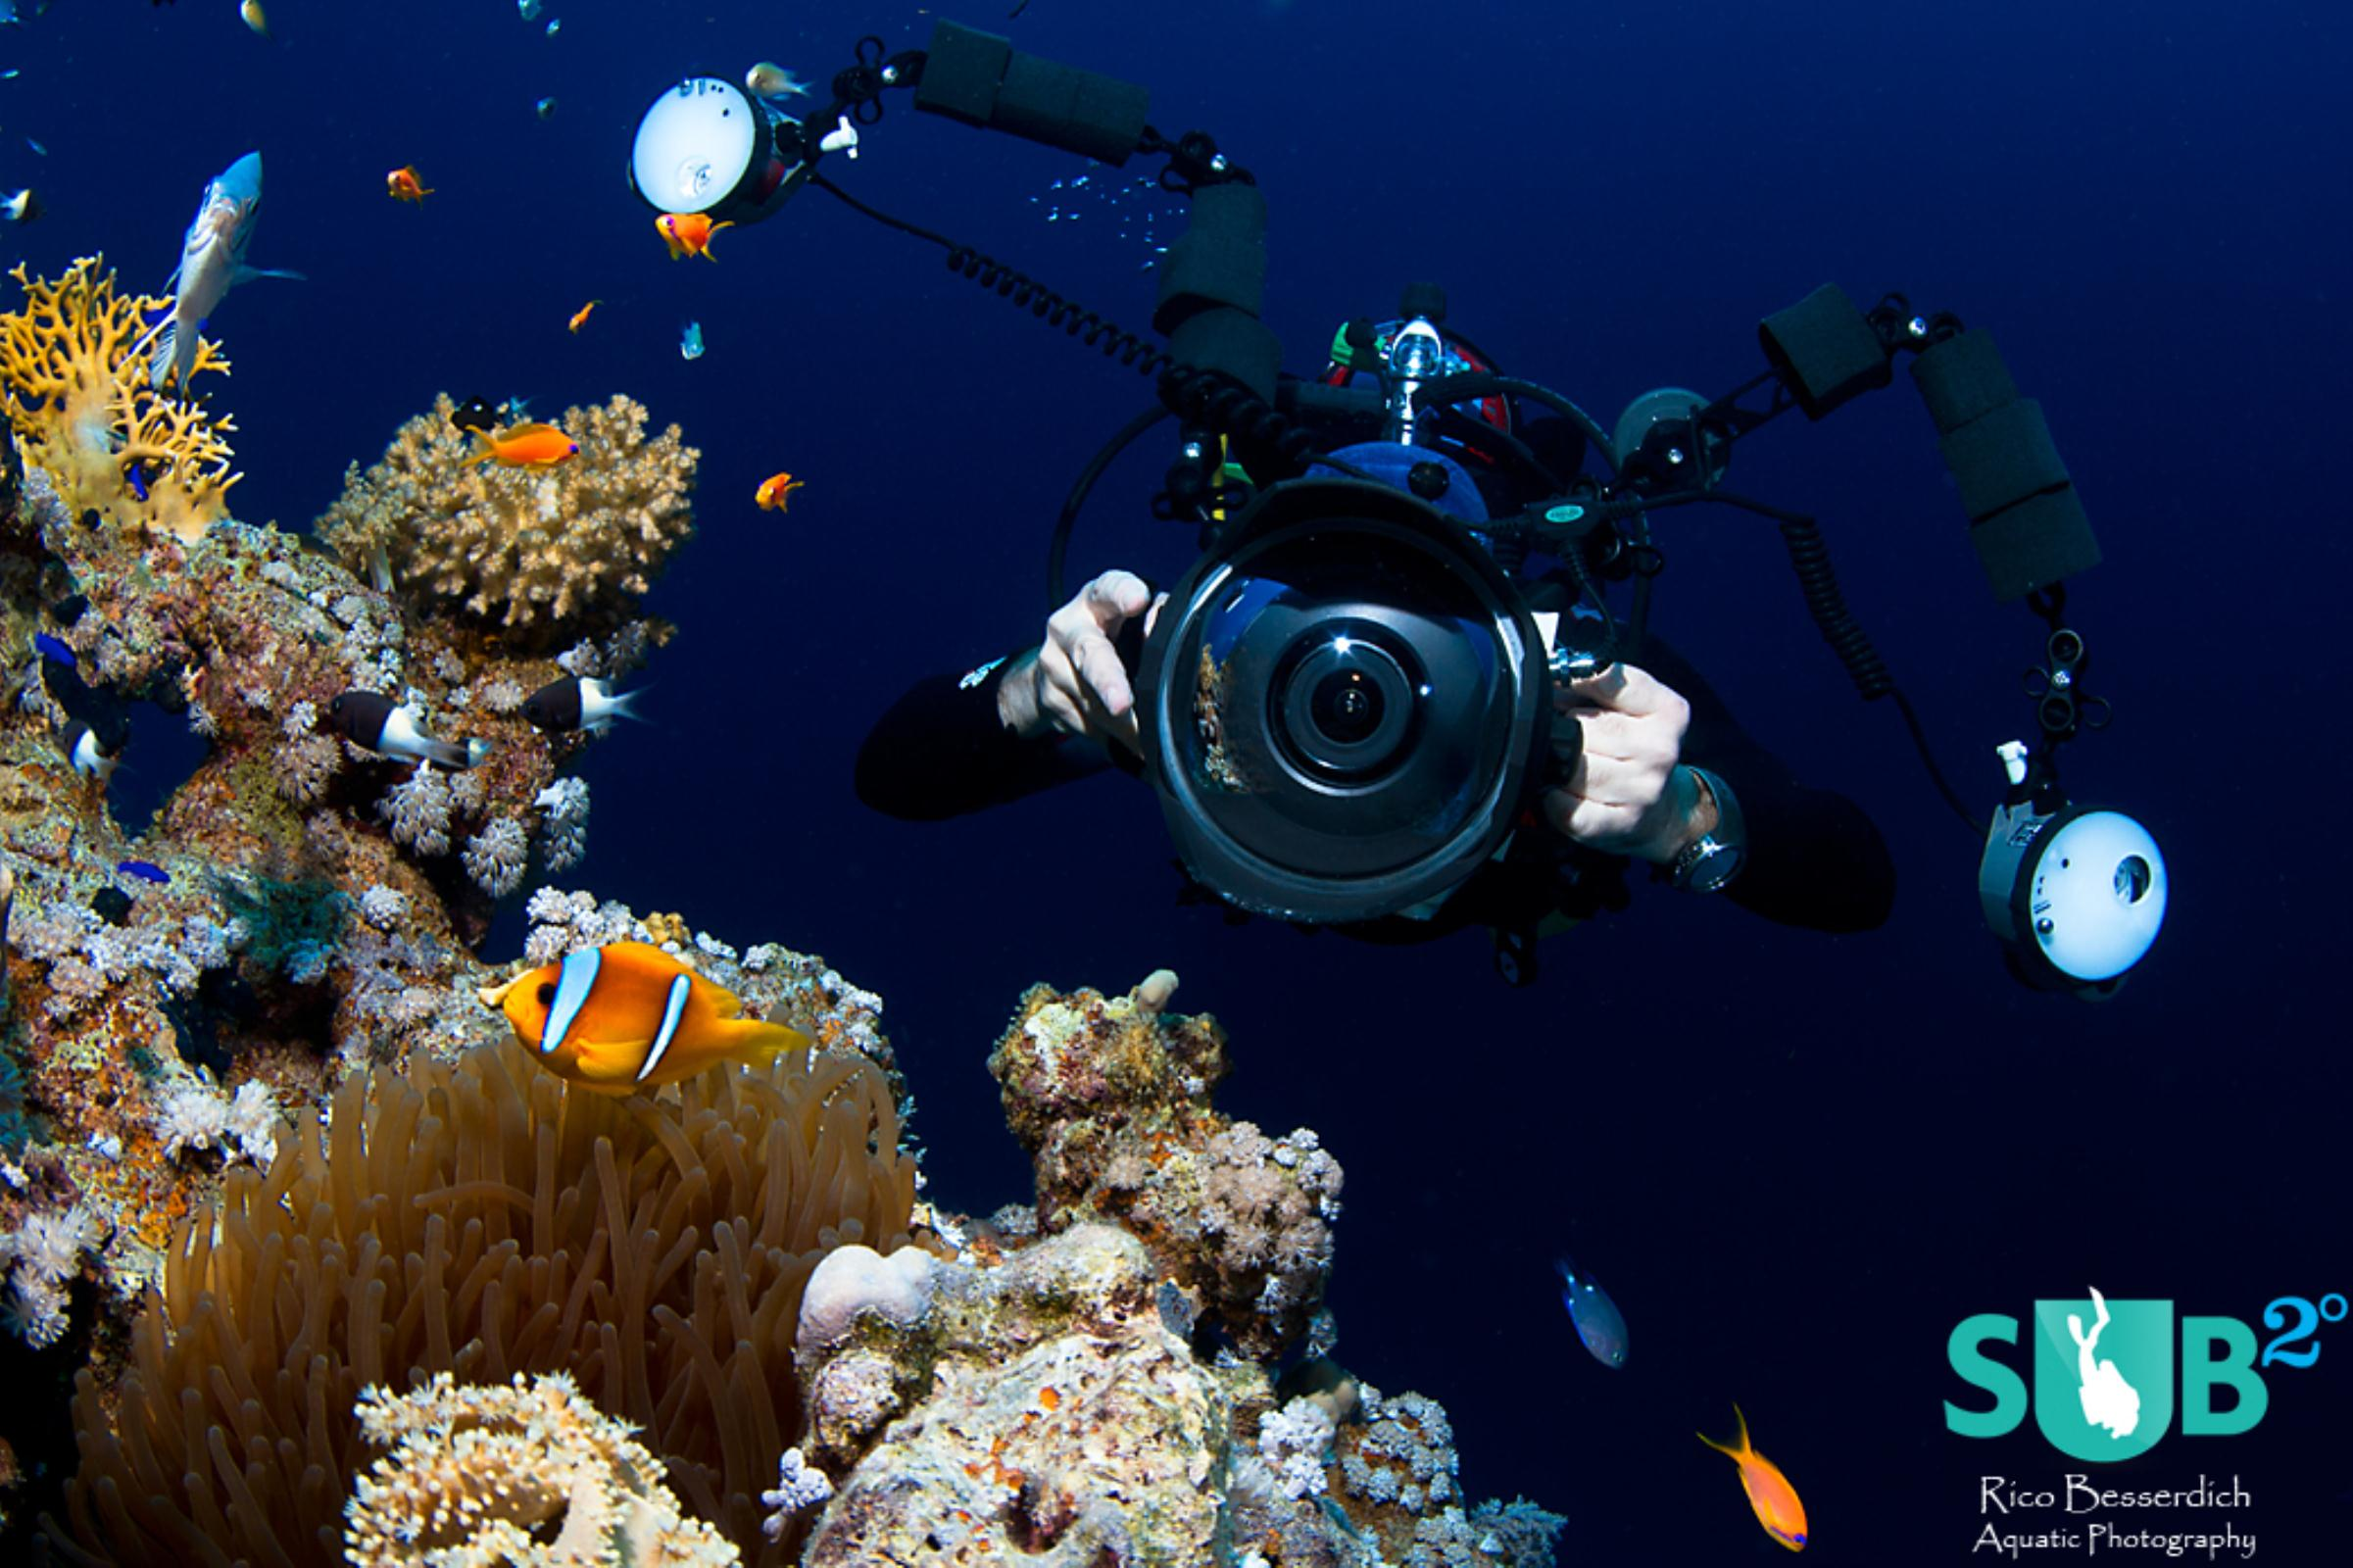 Wide-angle scene. Getting close ( 30 cm distance to the anemone-fish here ) boosts colours & tension.